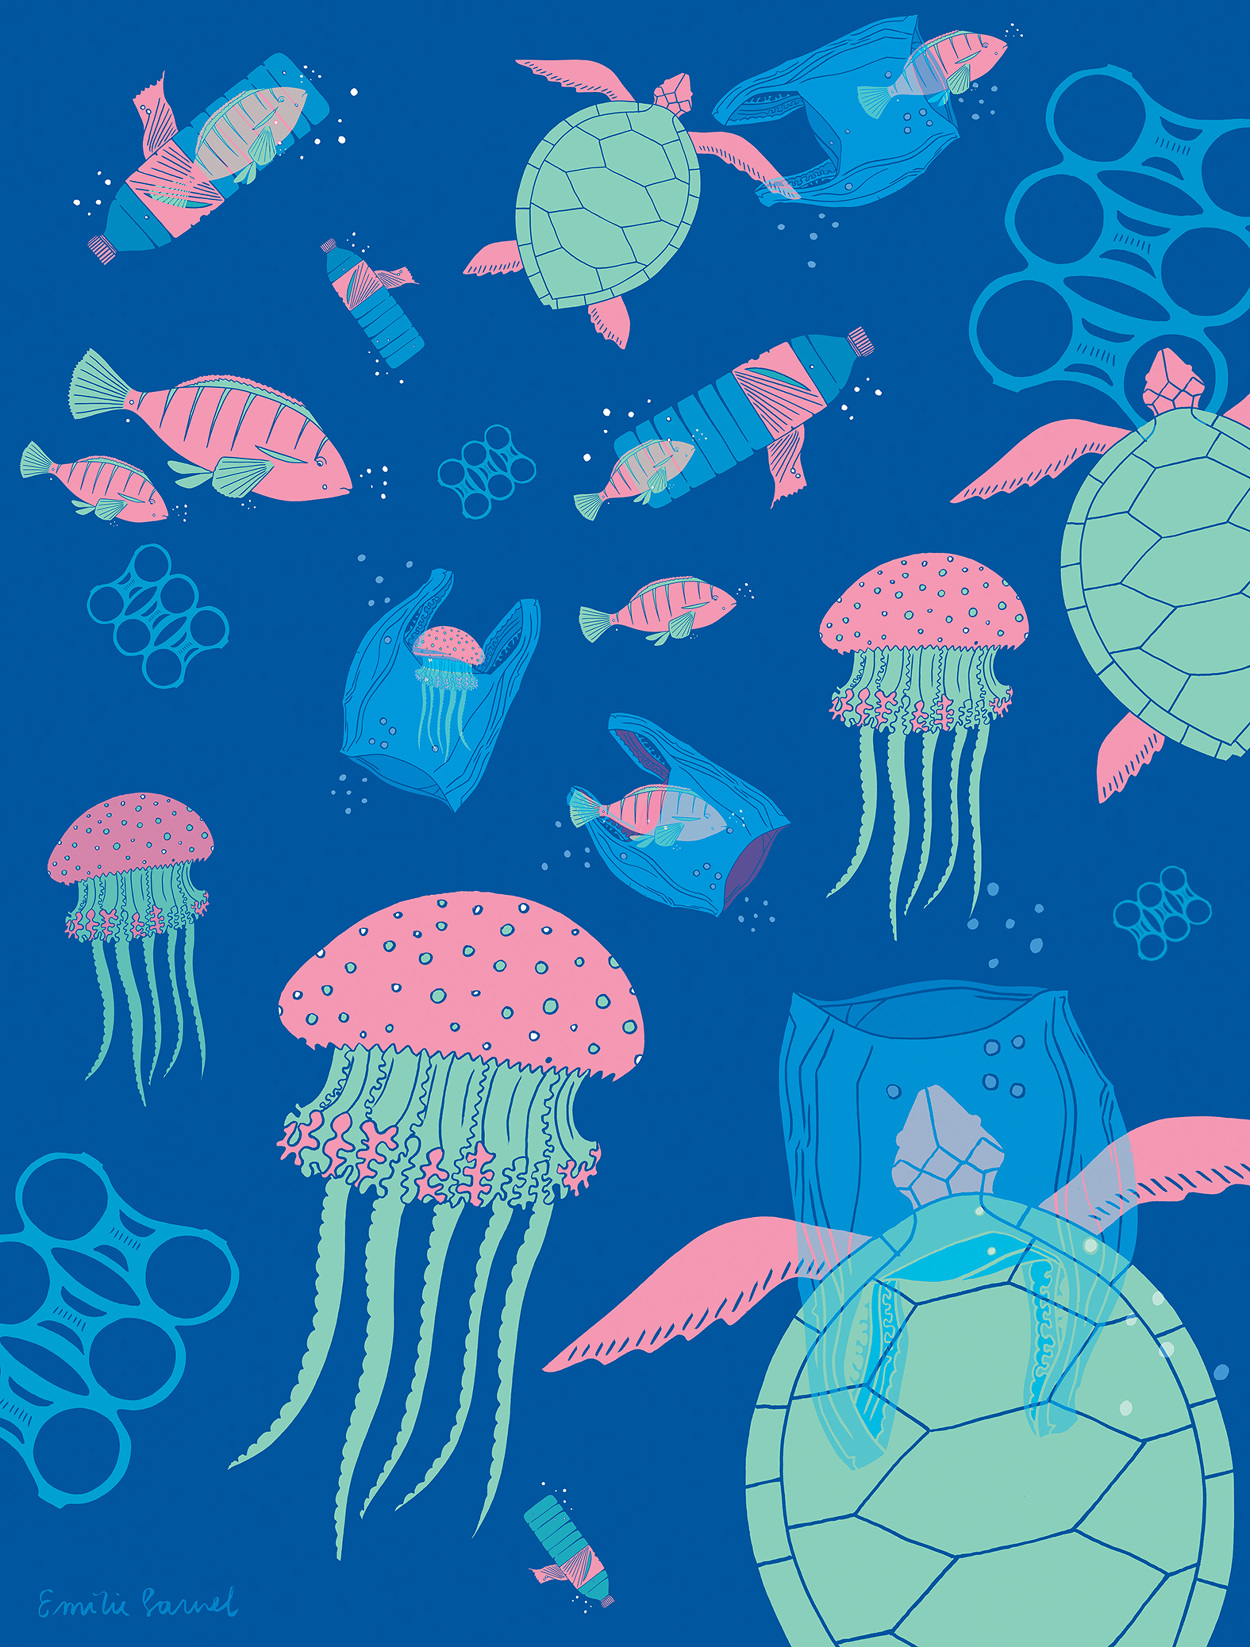 save our oceans poster wwf emiliesarnel